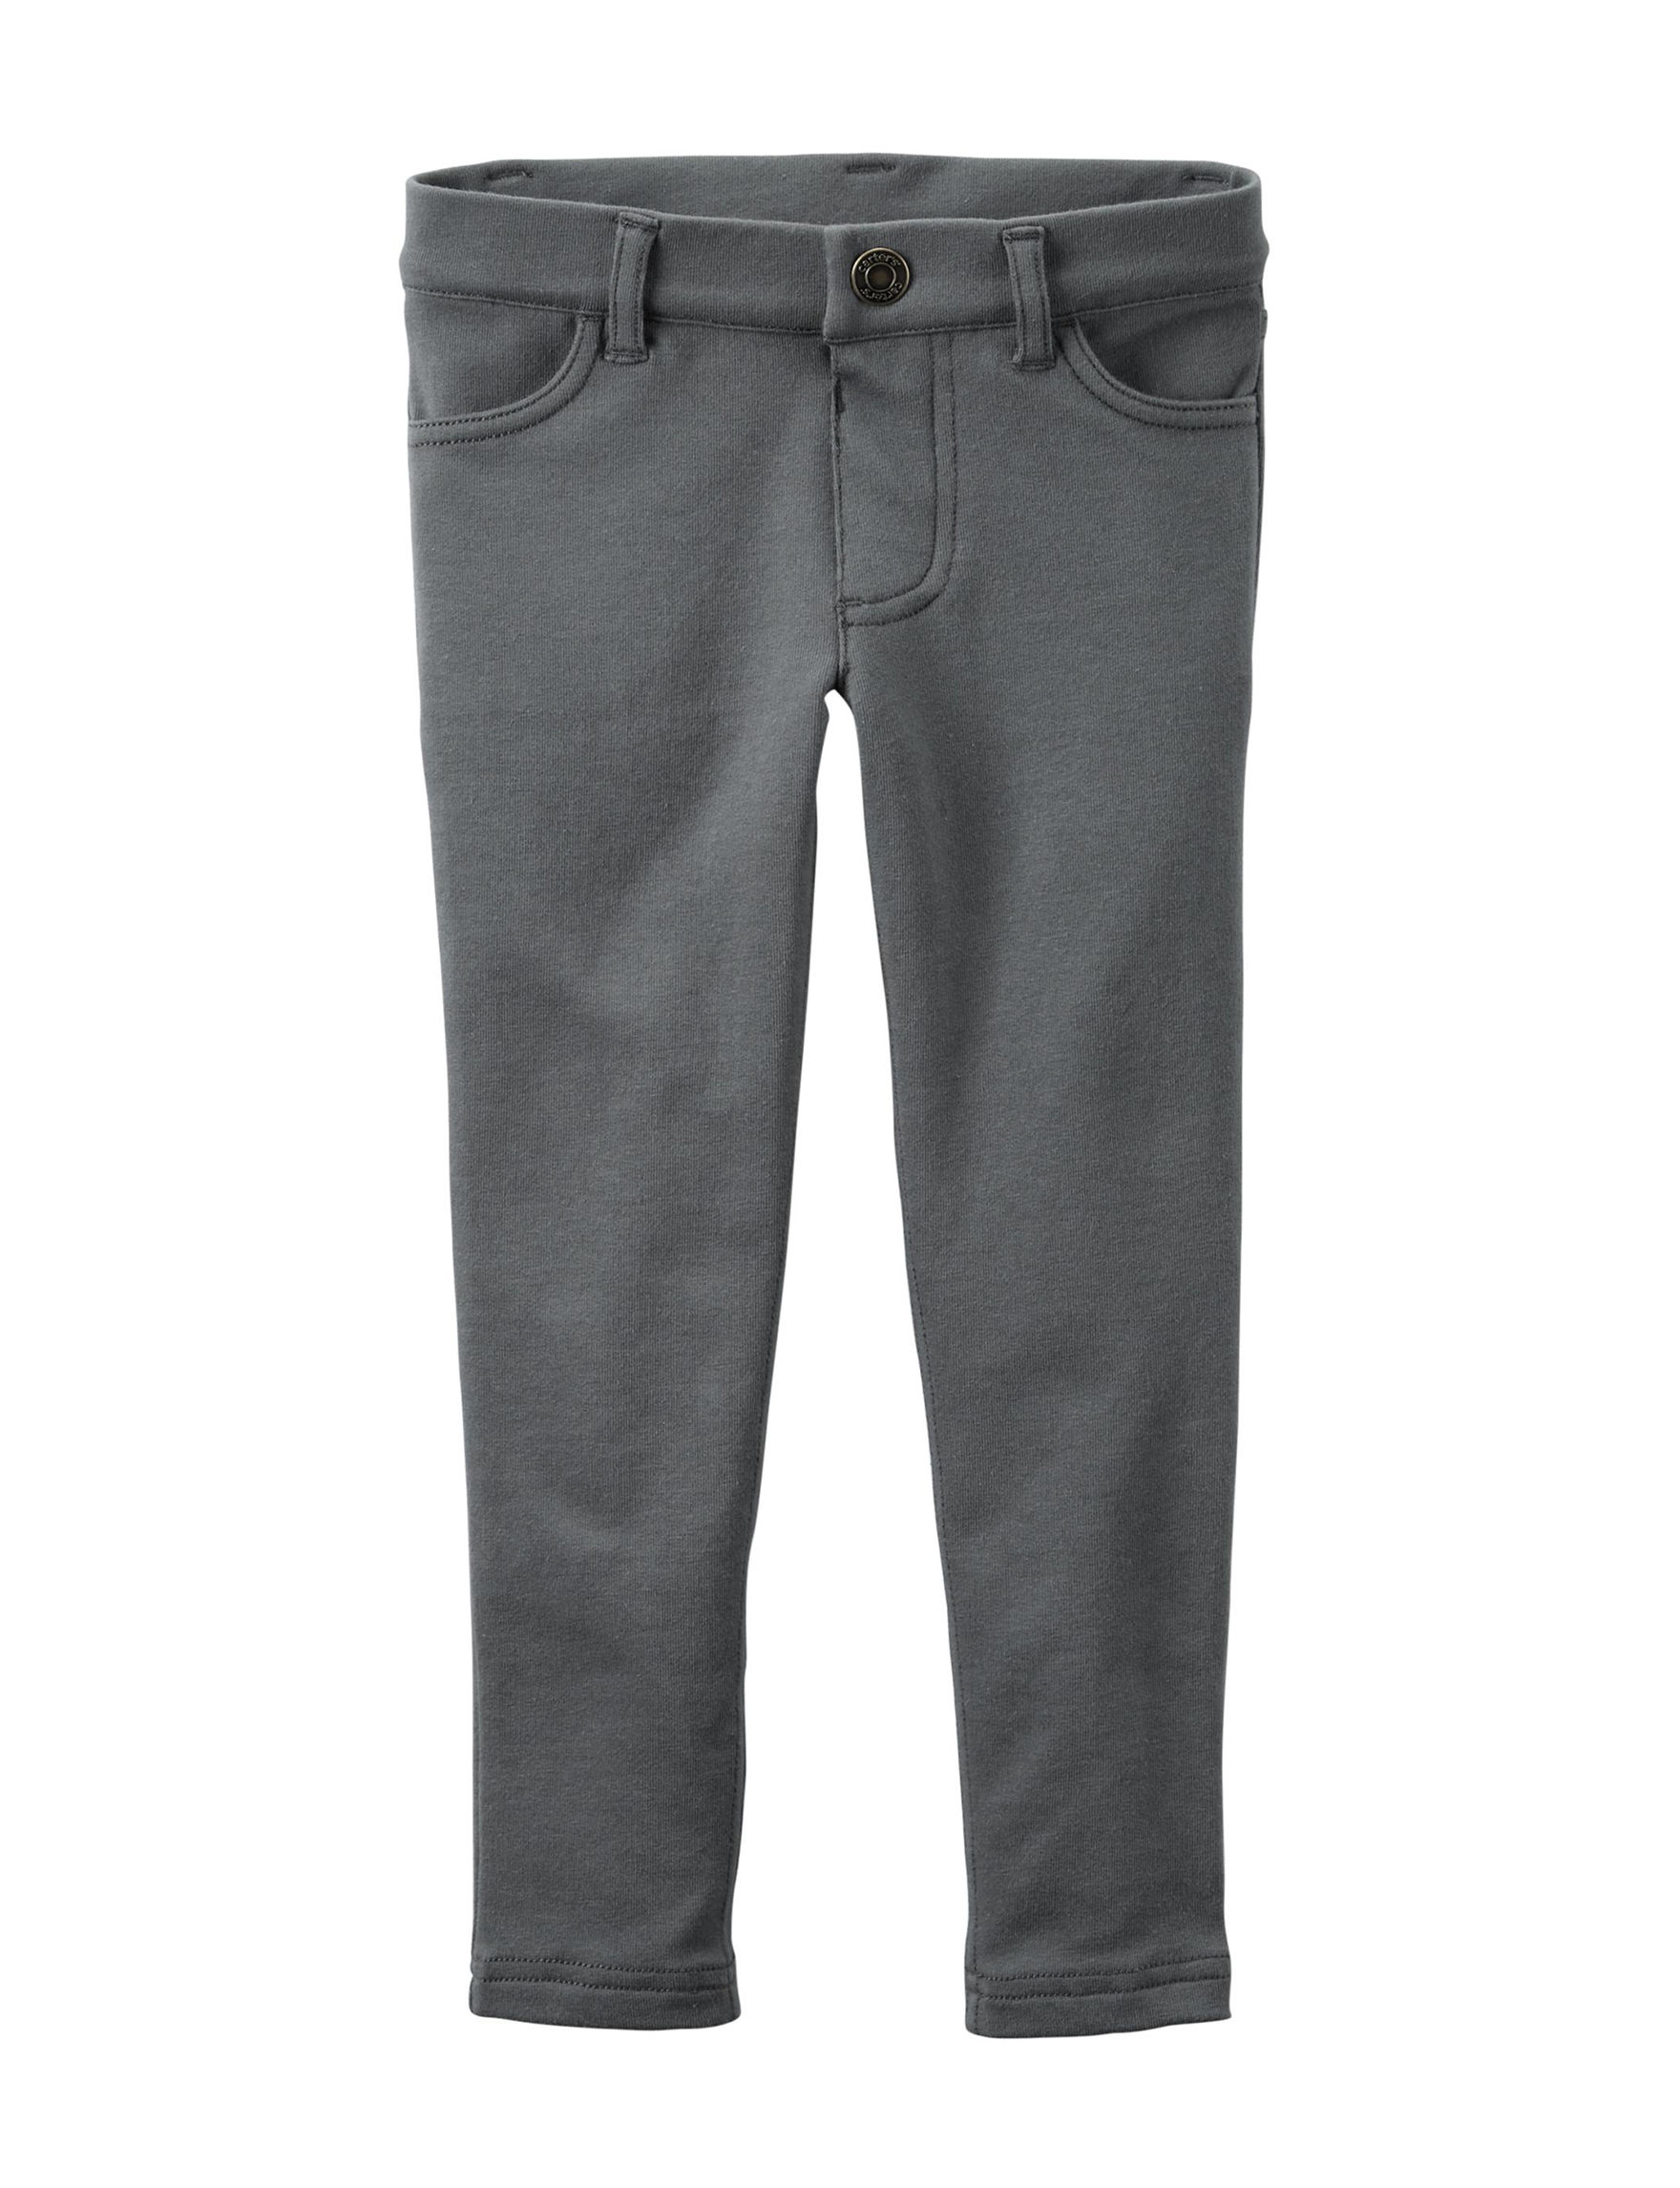 Carter's Charcoal Skinny